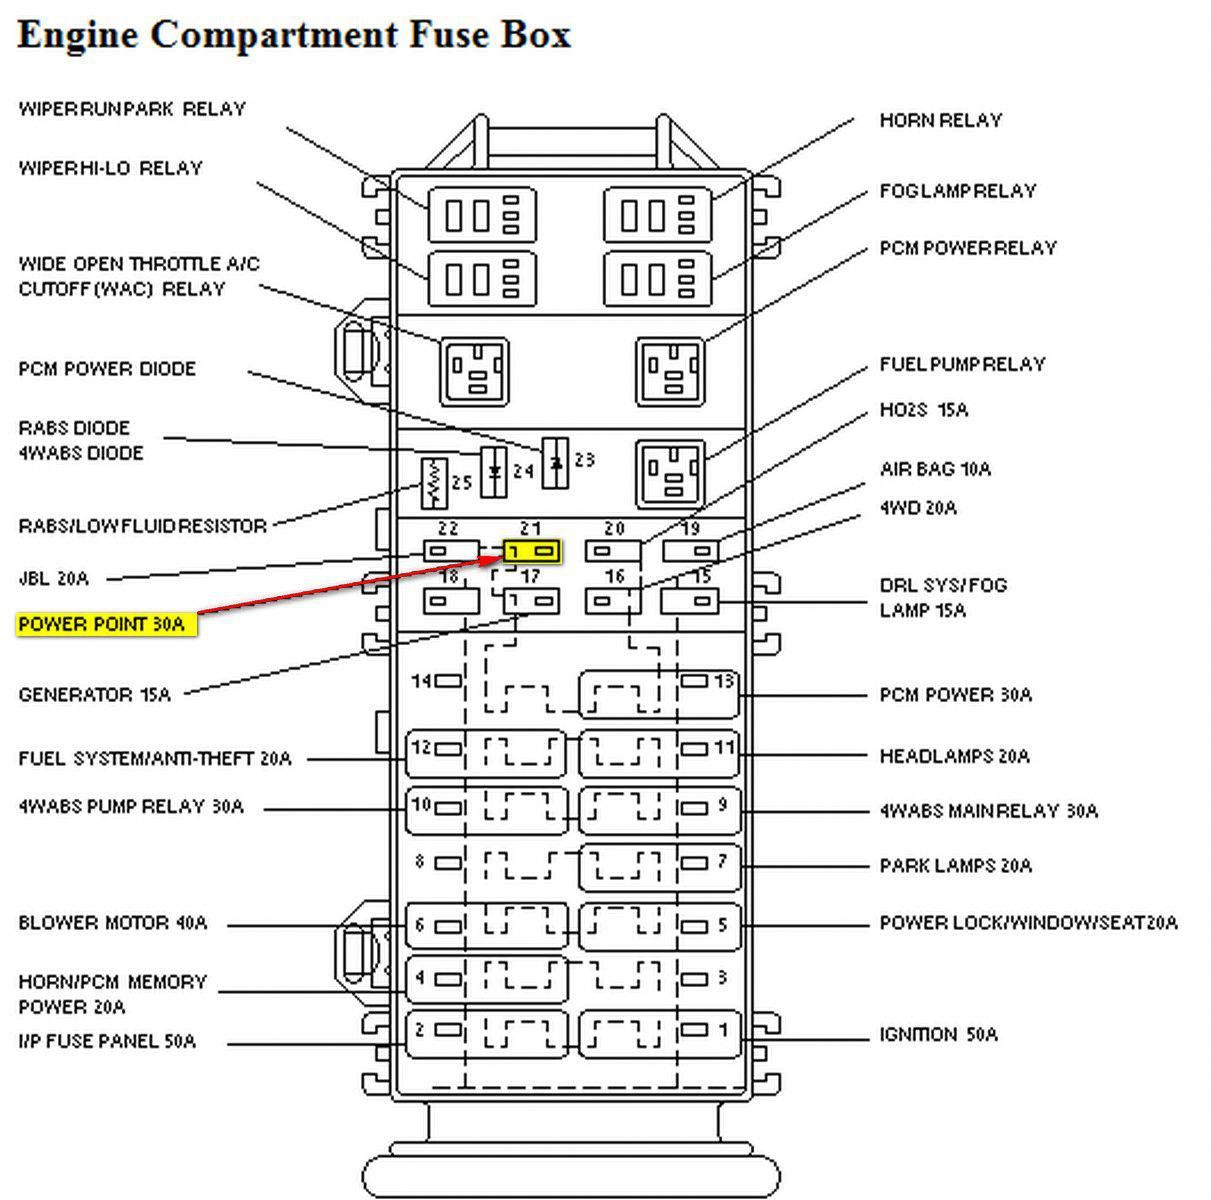 small resolution of 97 ford fuse box blog wiring diagram 1997 ford f150 fuse box diagram under hood 1997 ford fuse box